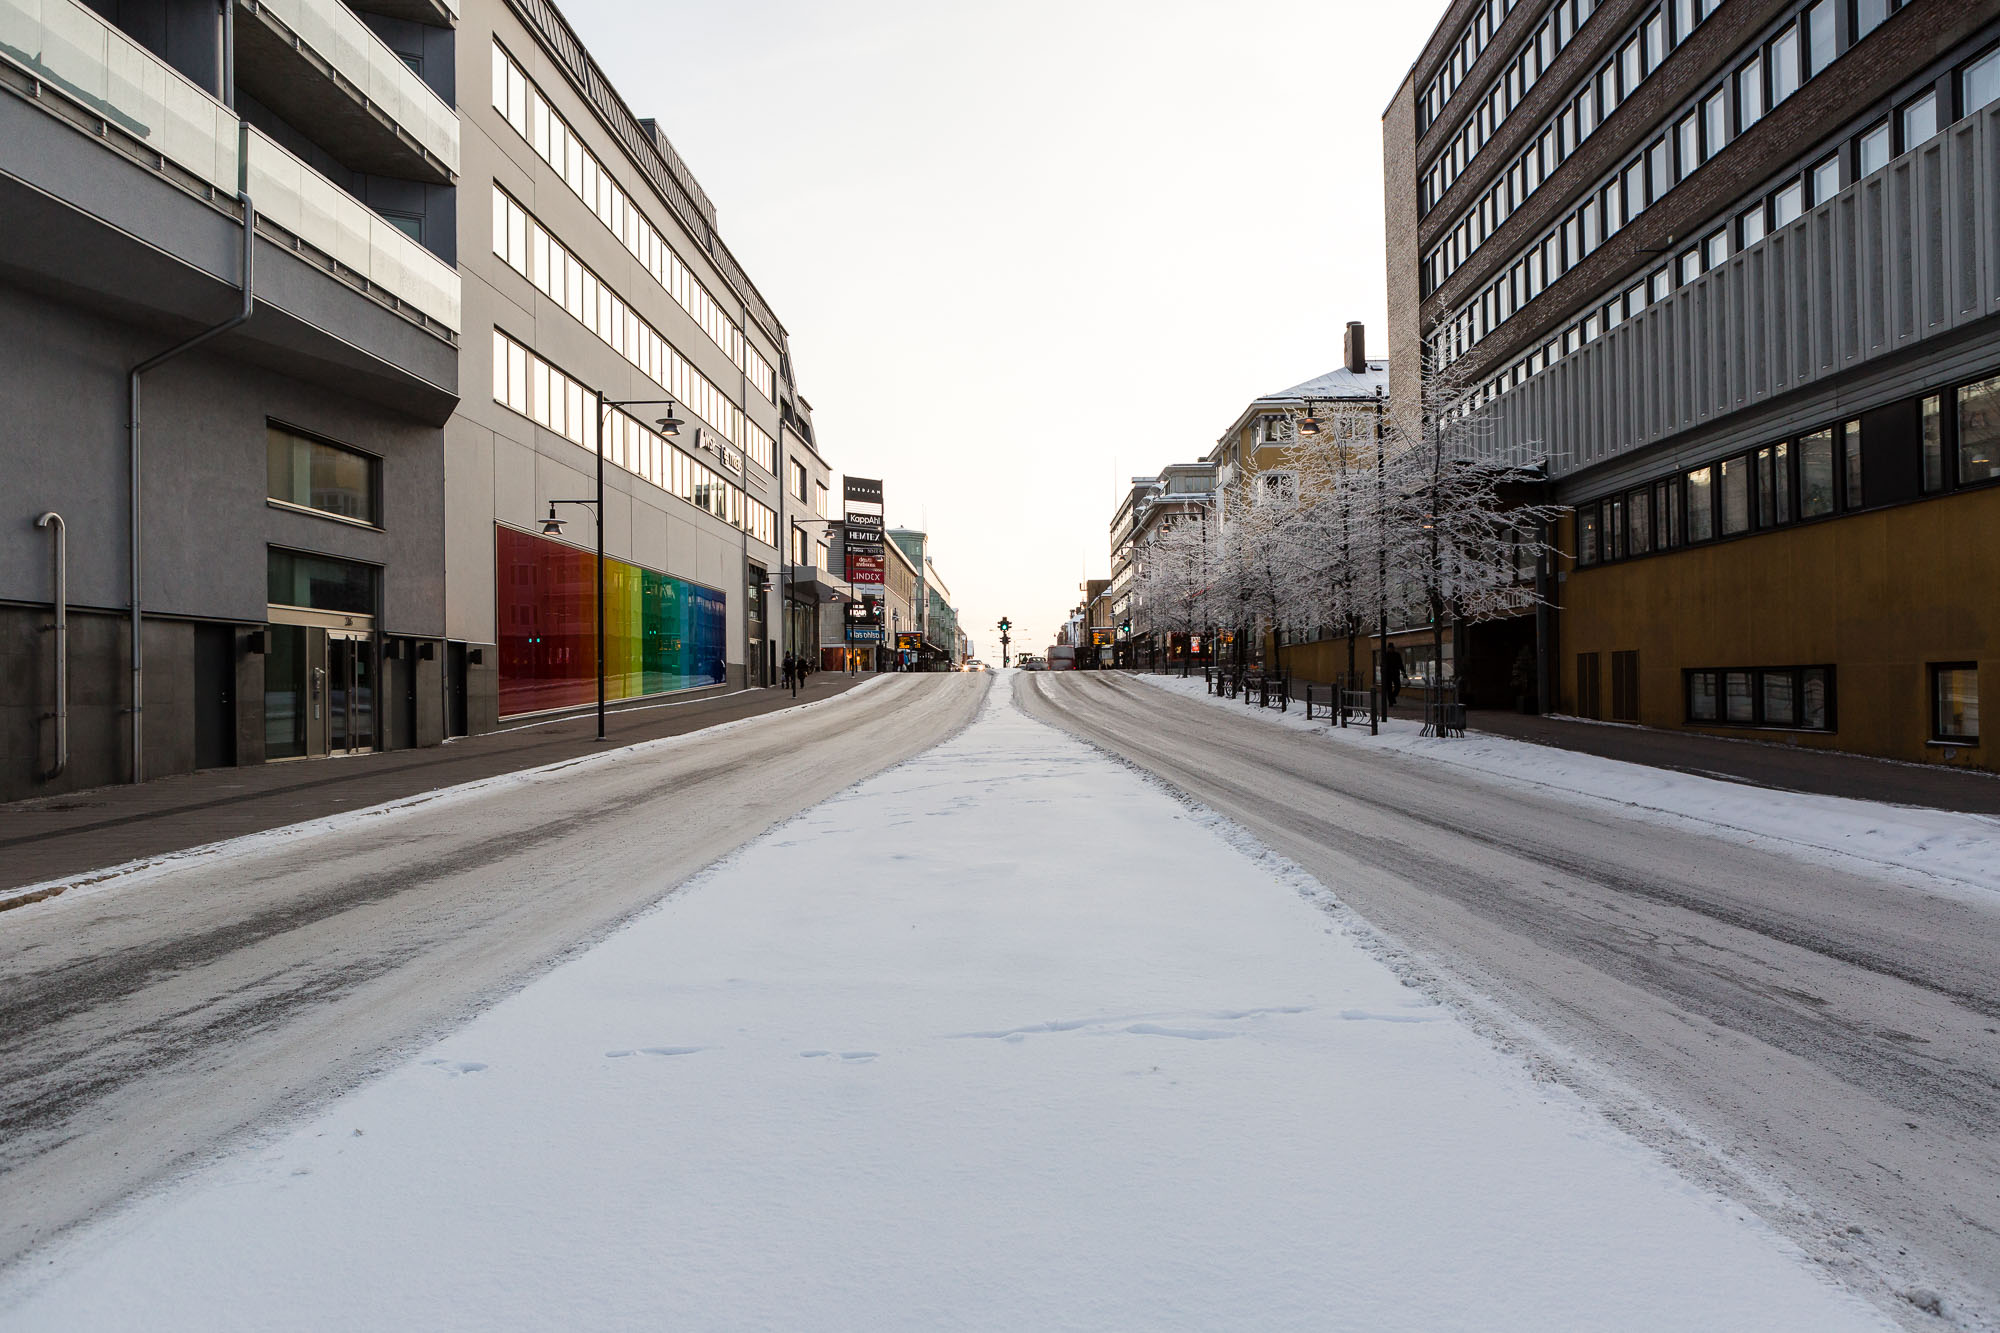 High street, Luleå, Sweden January 2017, Ben Lee Photography